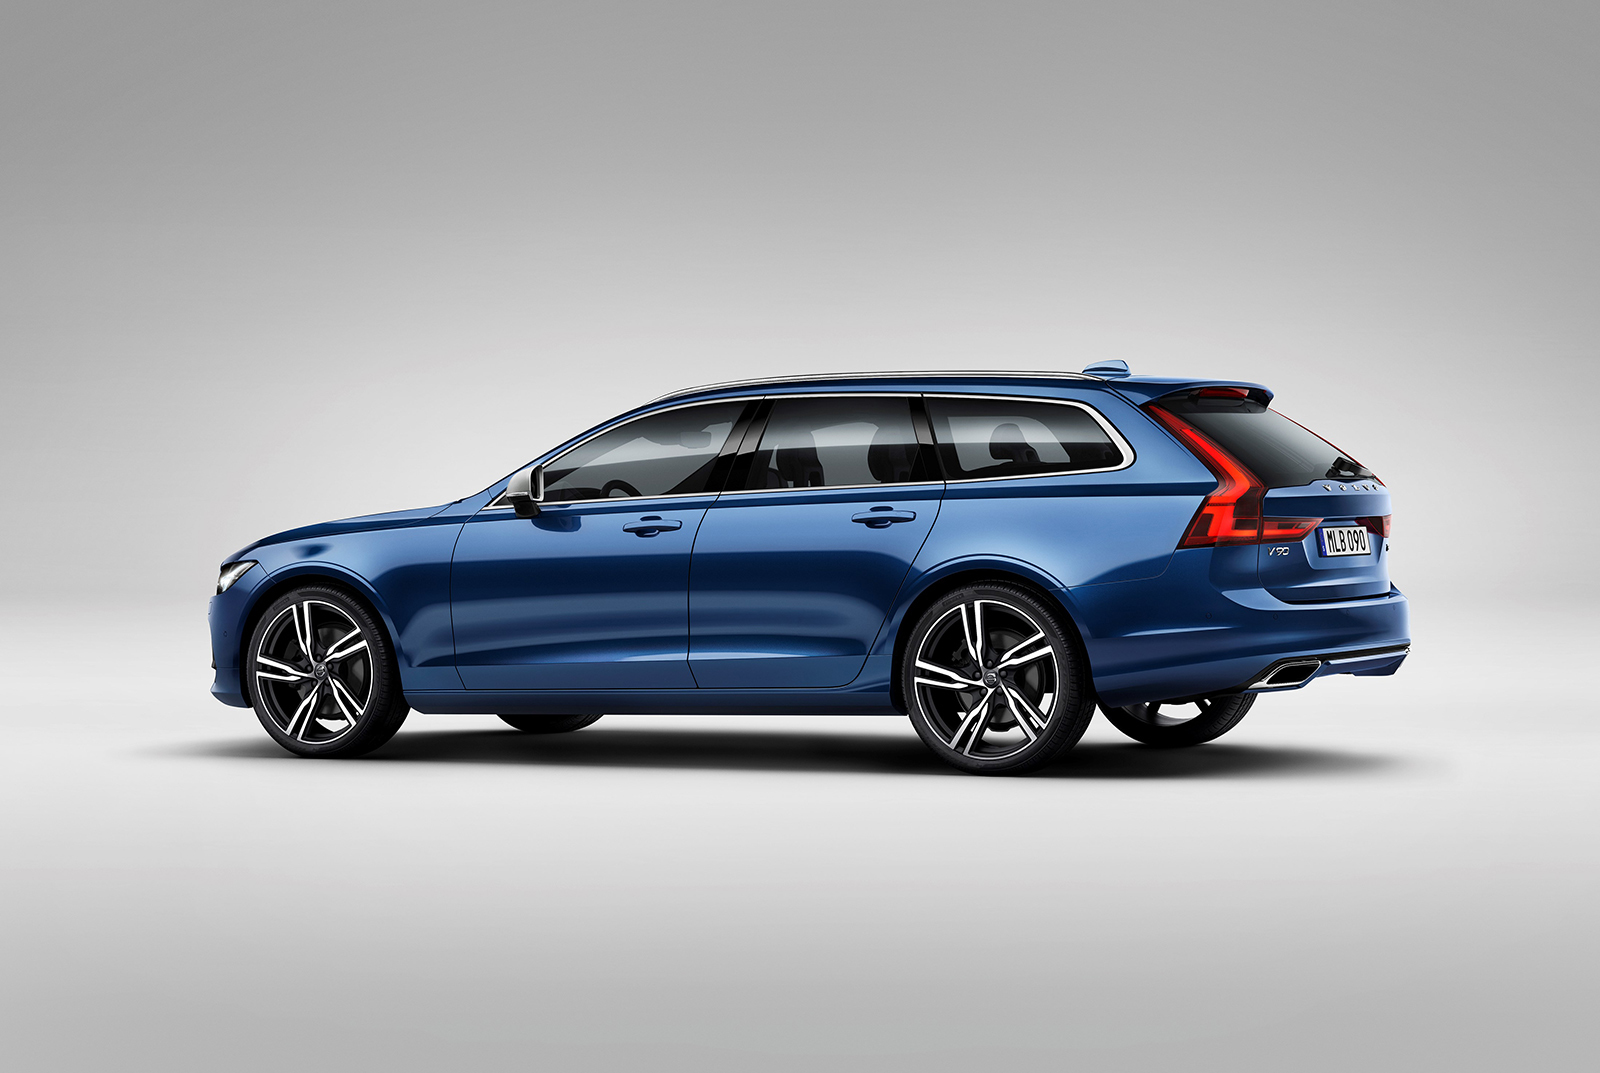 Volvo V90 2017 Wallpapers Images Photos Pictures Backgrounds